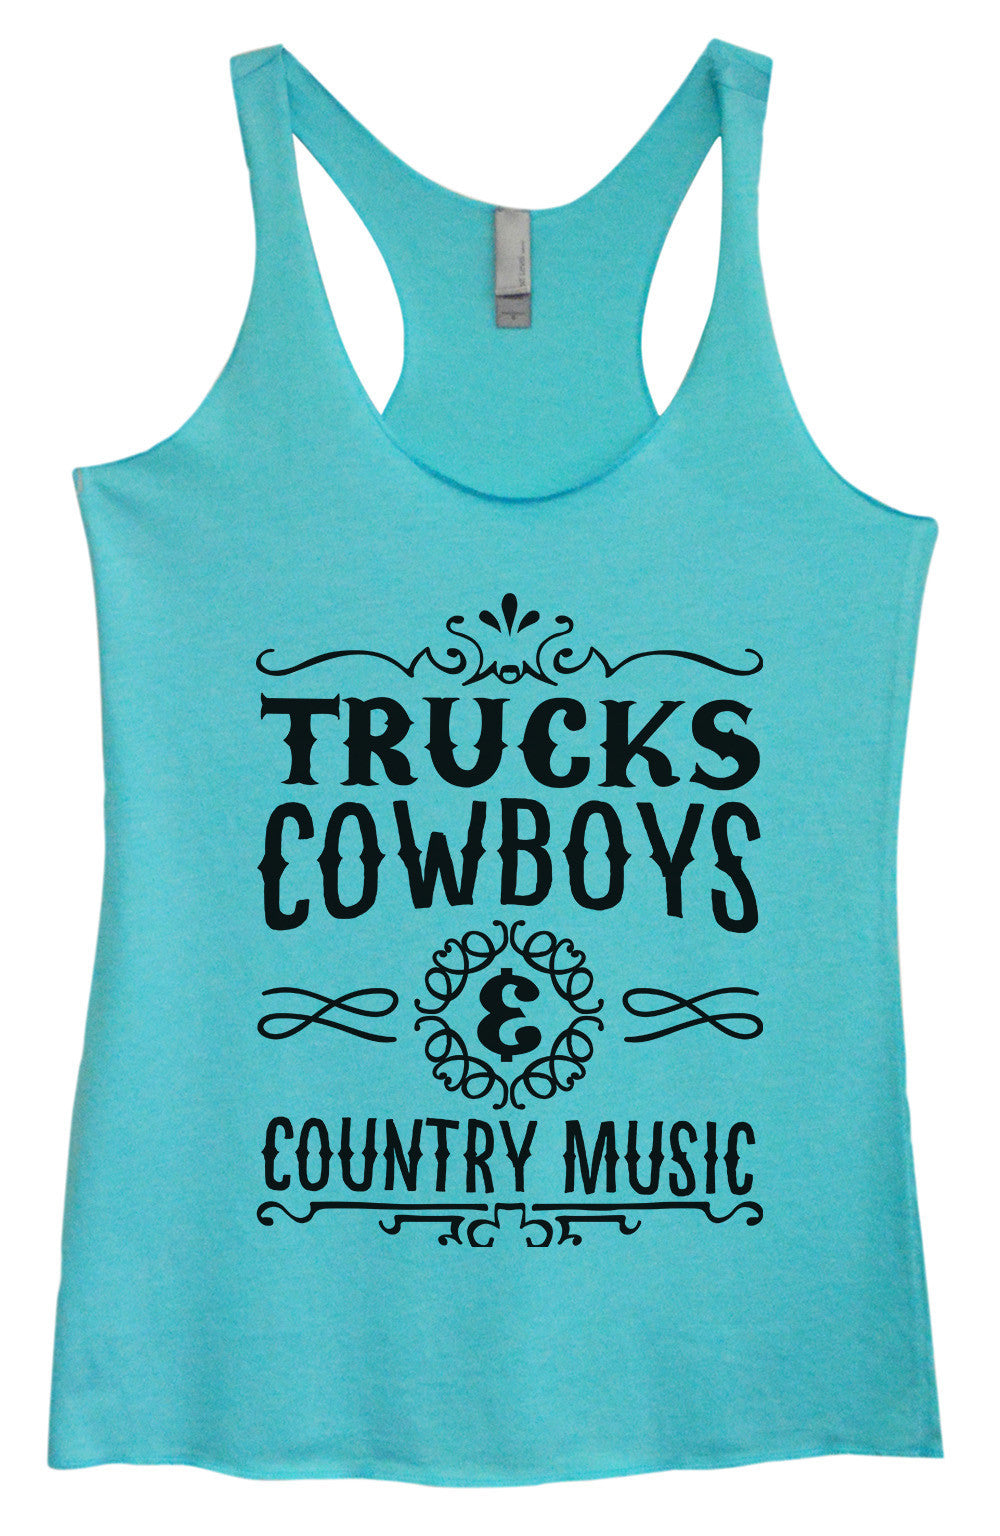 5b13f89c44c8ee Womens Fashion Triblend Tank Top - Trucks Cowboys   Country Music -  Tri-1497 -